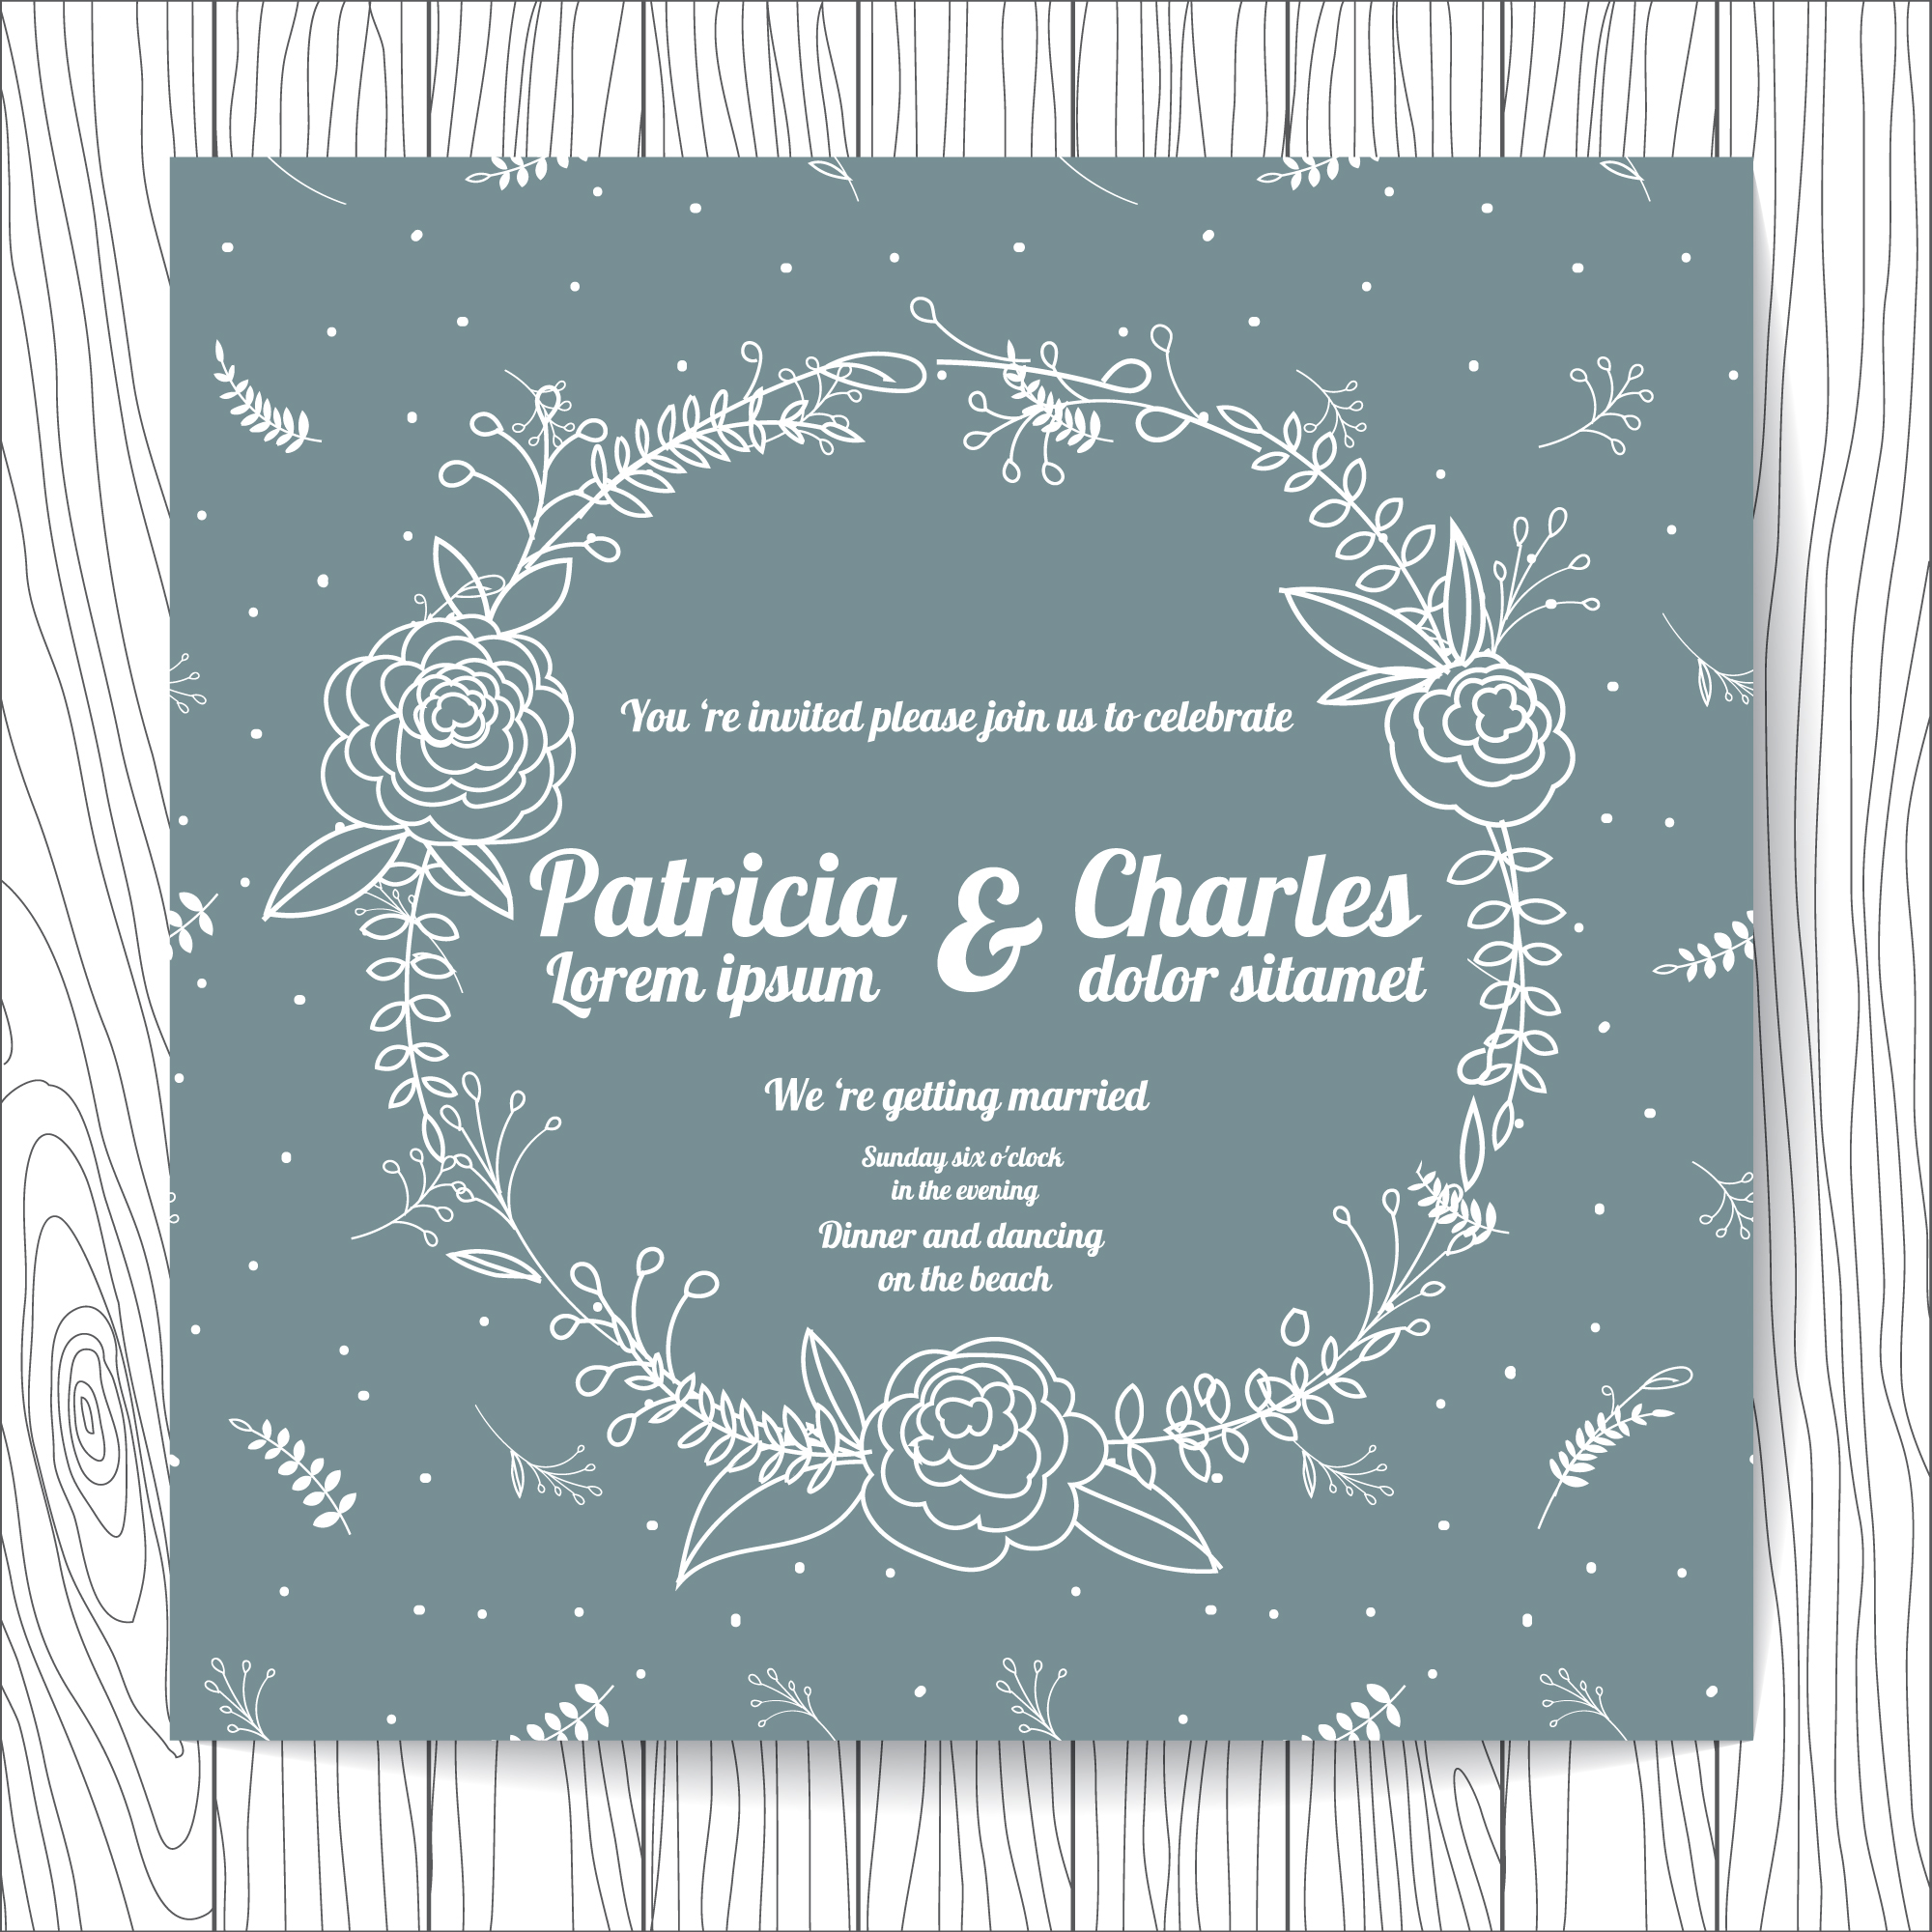 Wedding invitation with floral wreath and leaves pattern background